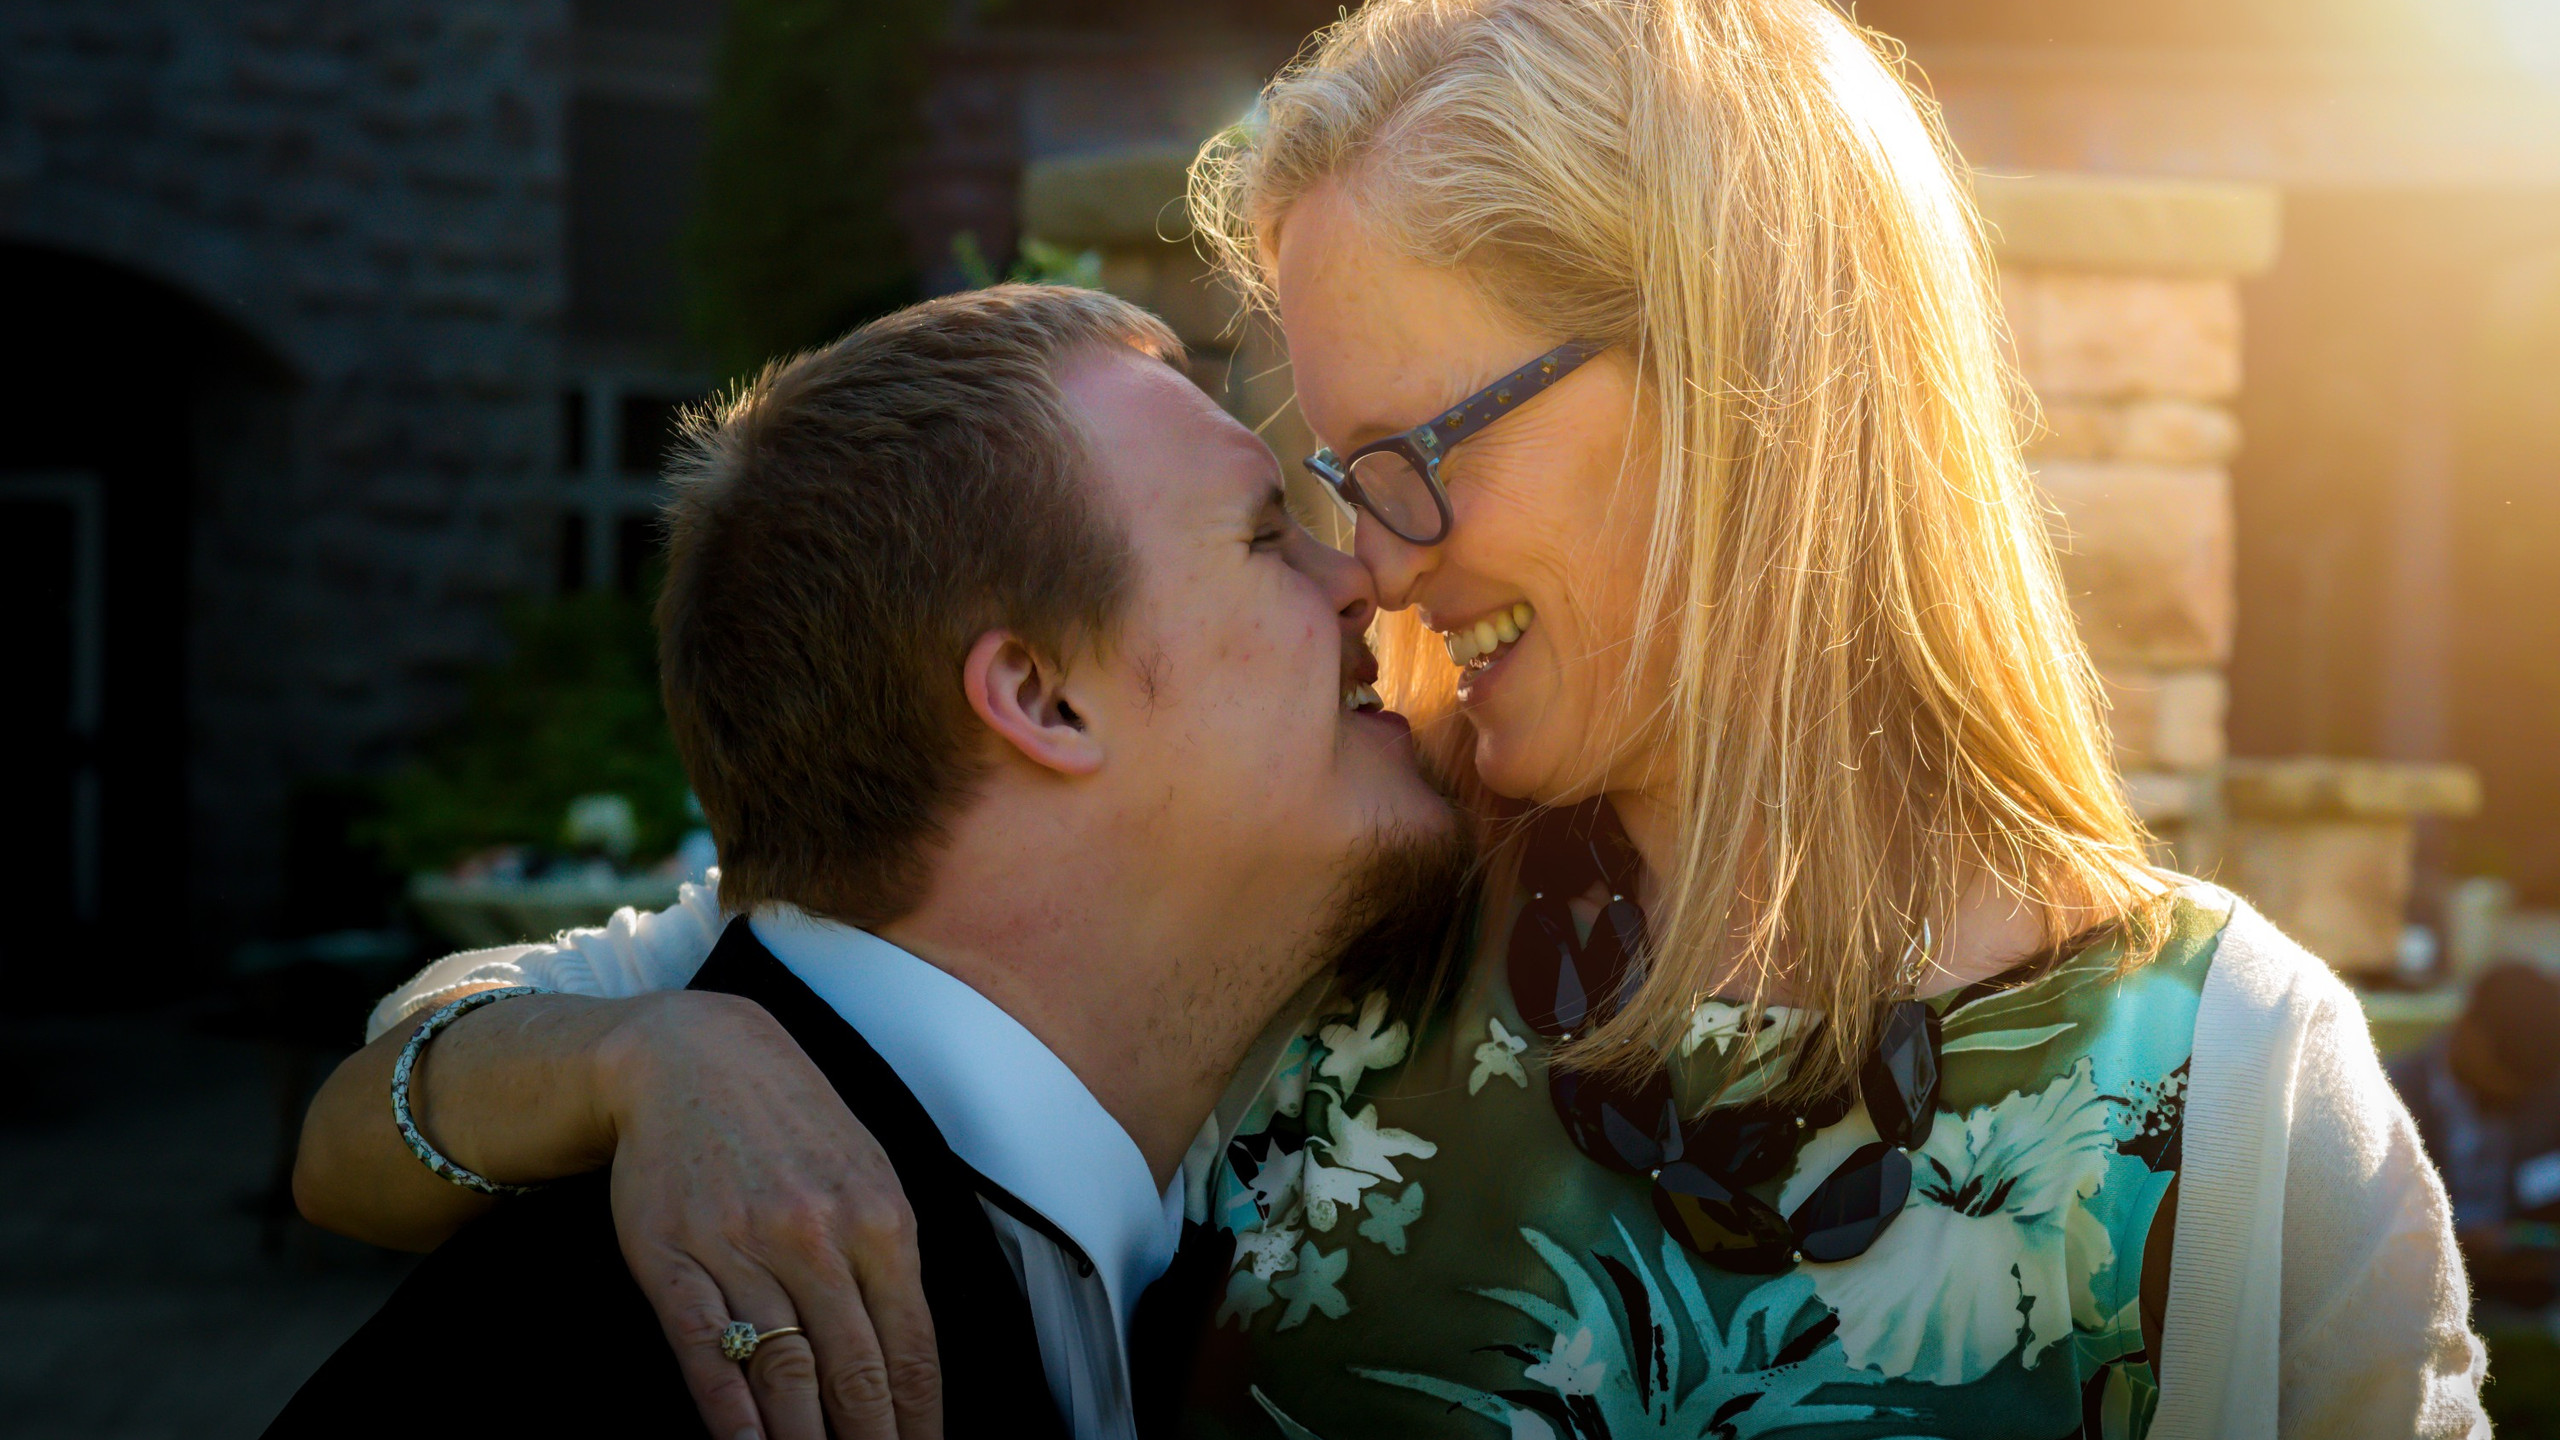 Mother and son with Downs Syndrome